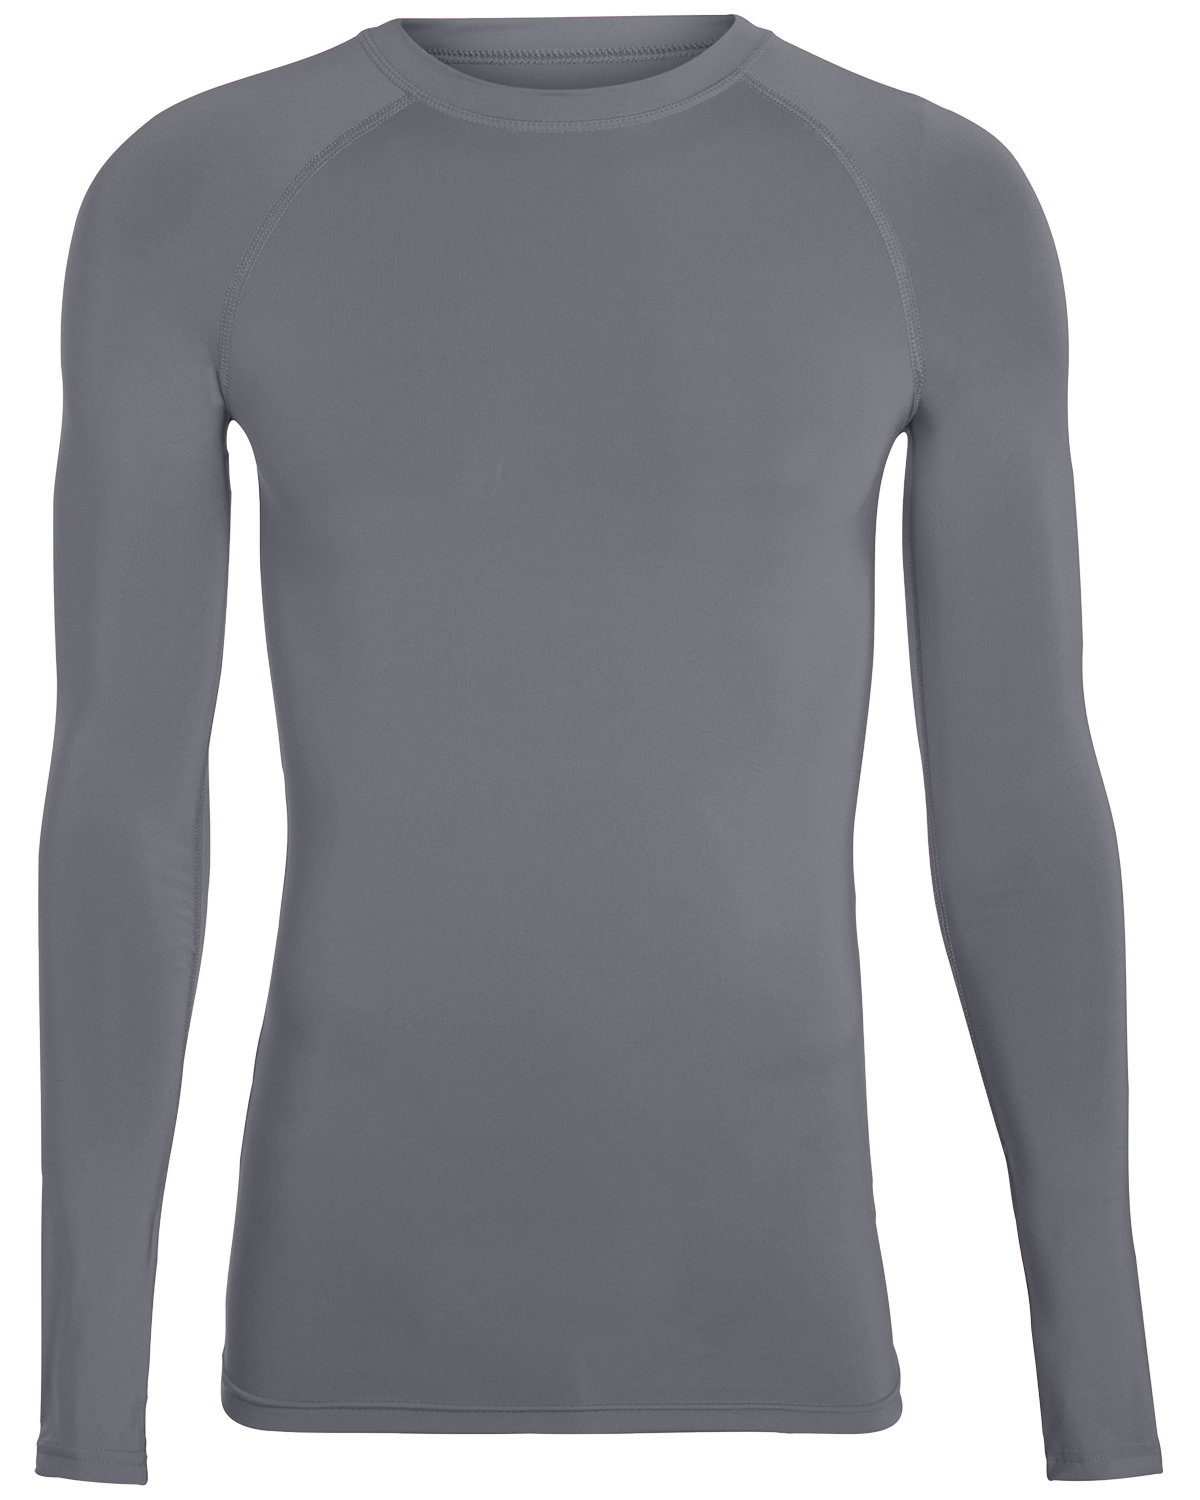 Augusta Drop Ship Adult Hyperform Long-Sleeve Compression Shirt GRAPHITE